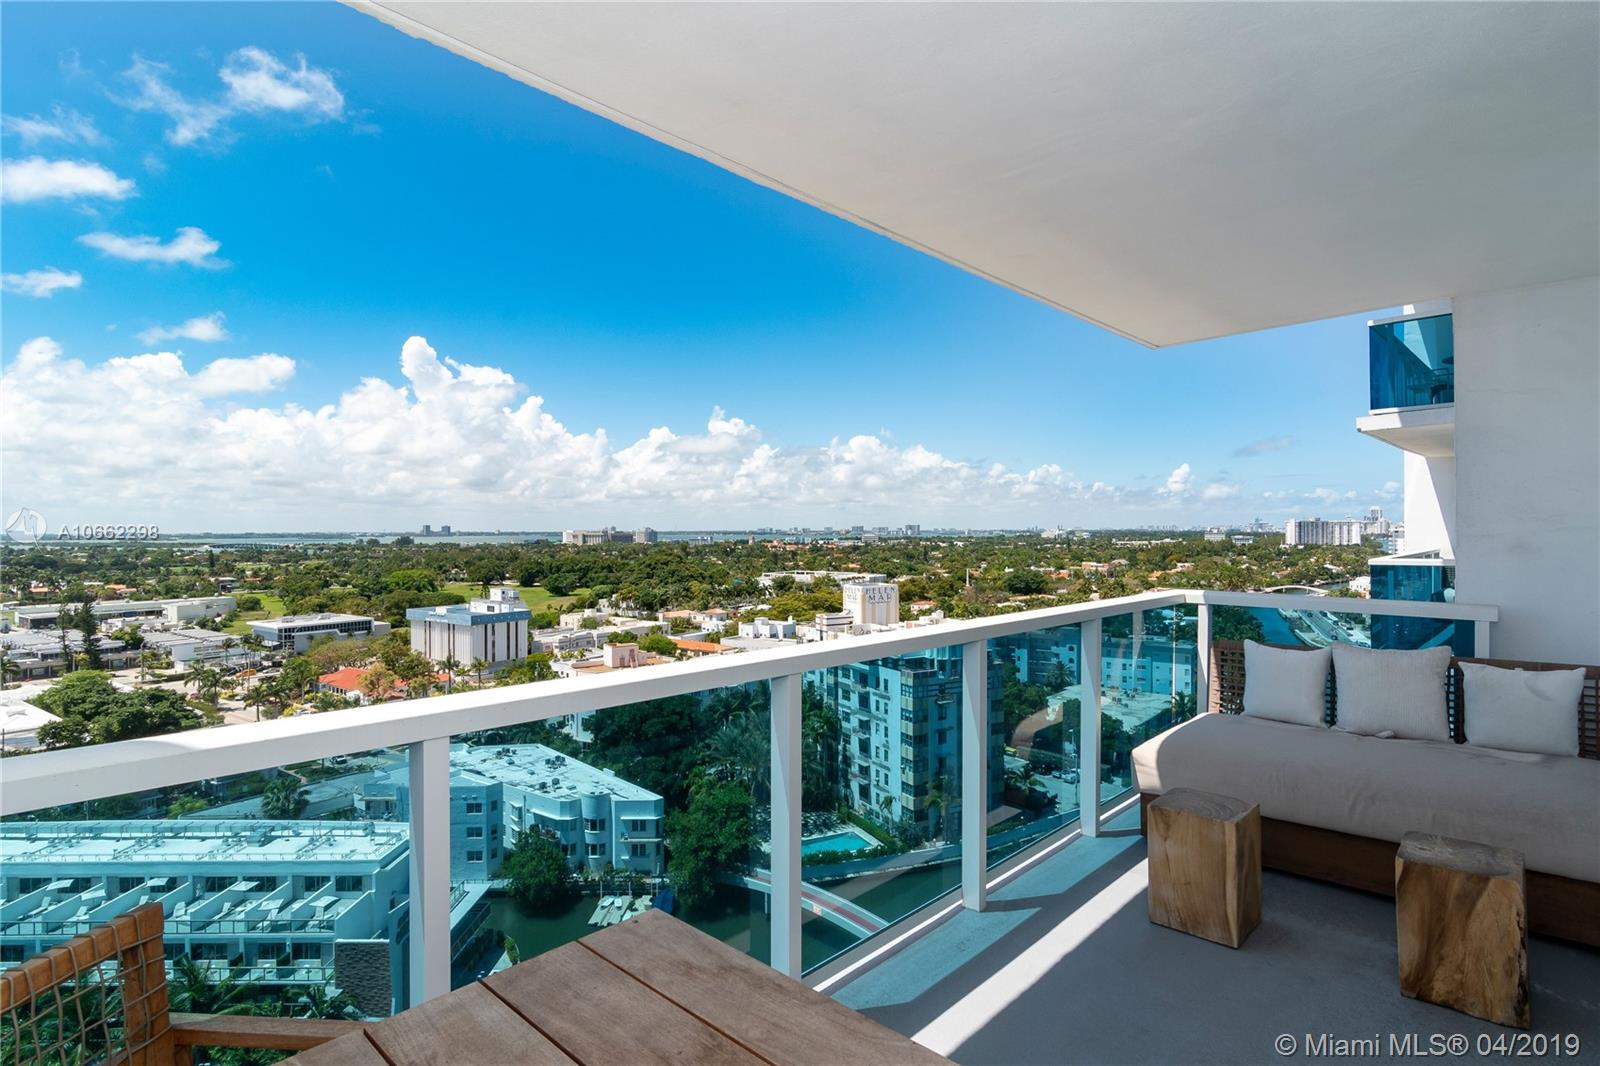 1 Hotel & Homes #1531 - 102 24th St #1531, Miami Beach, FL 33139